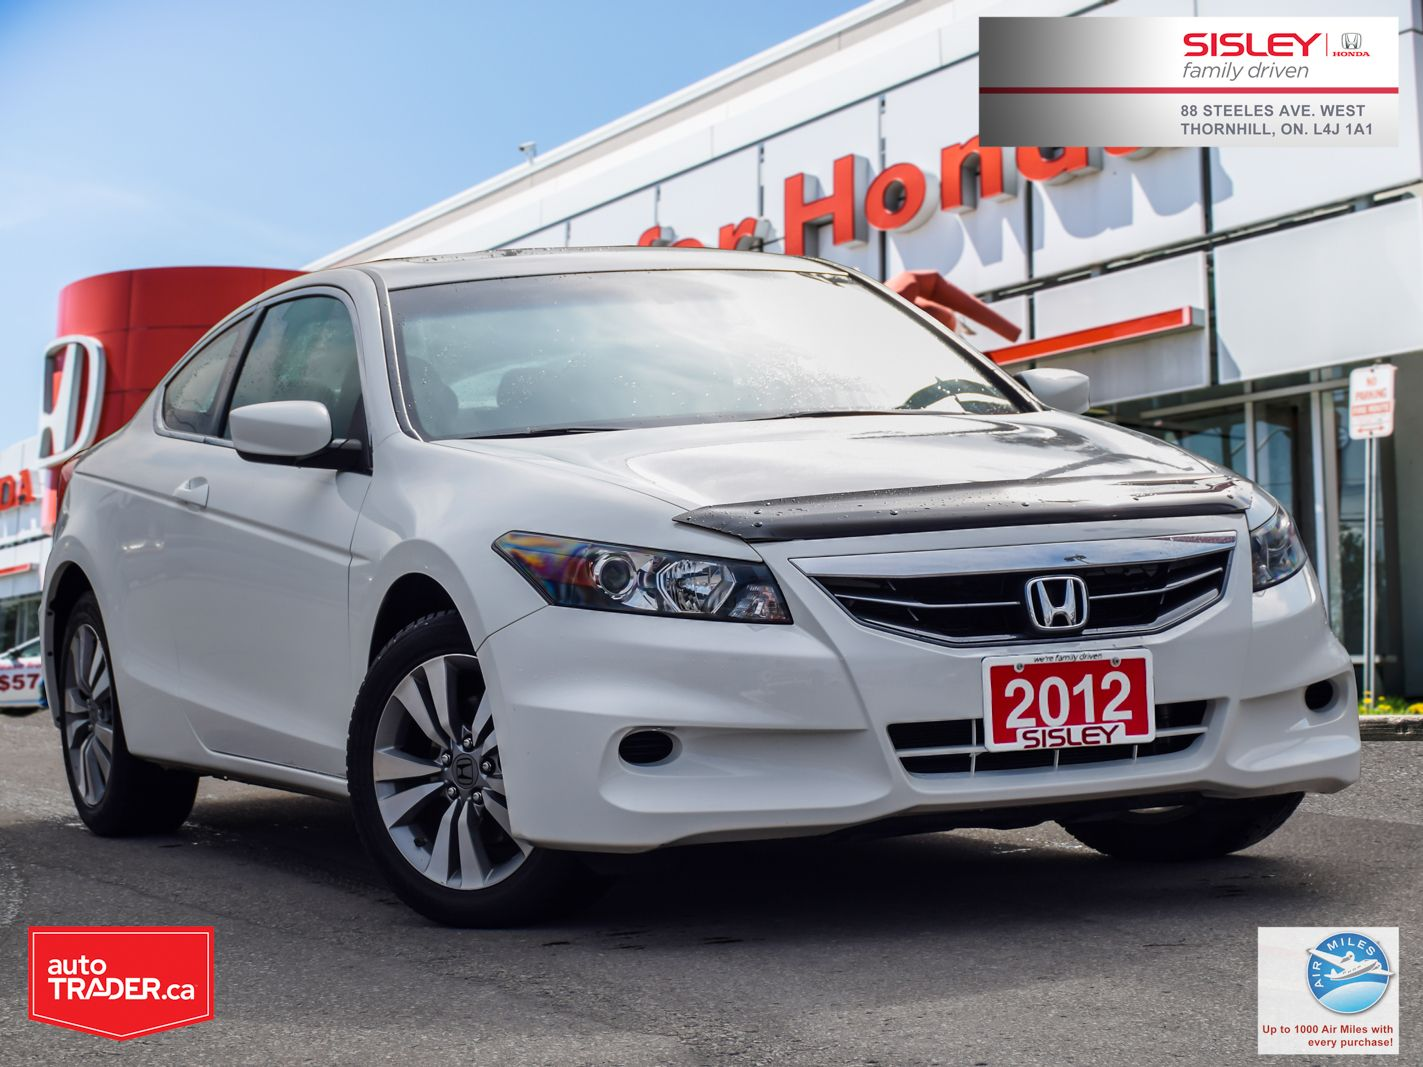 2012 Honda Accord Coupe Image